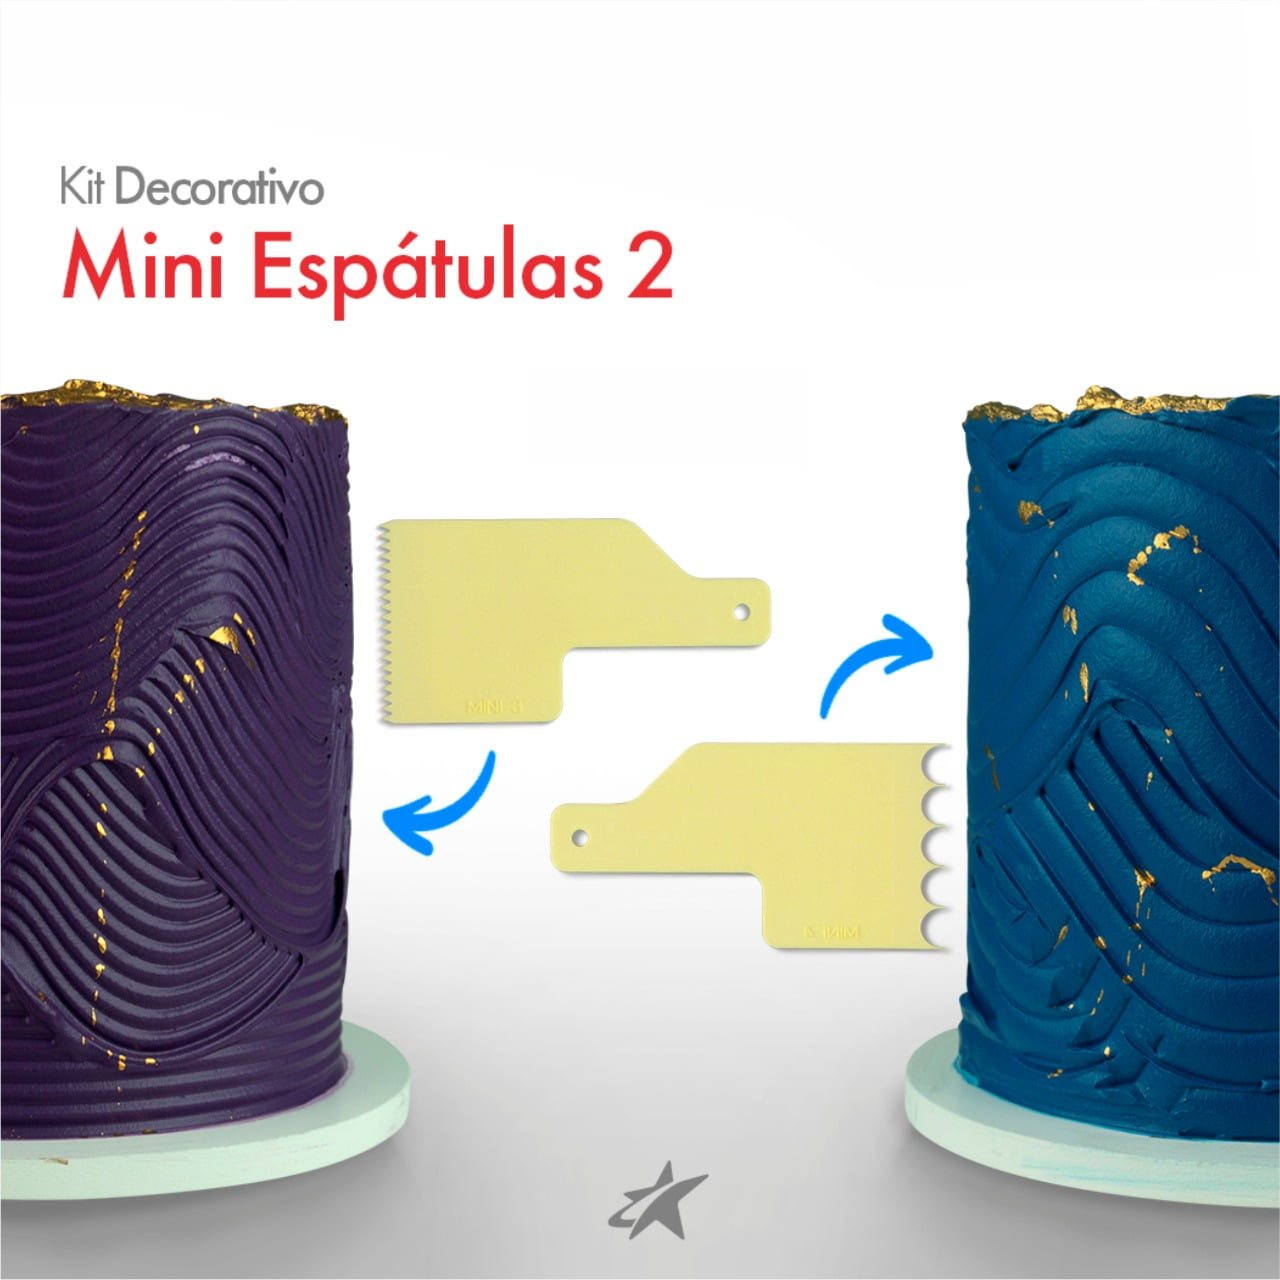 KIT DECORATIVO MINI ESPÁTULAS 2